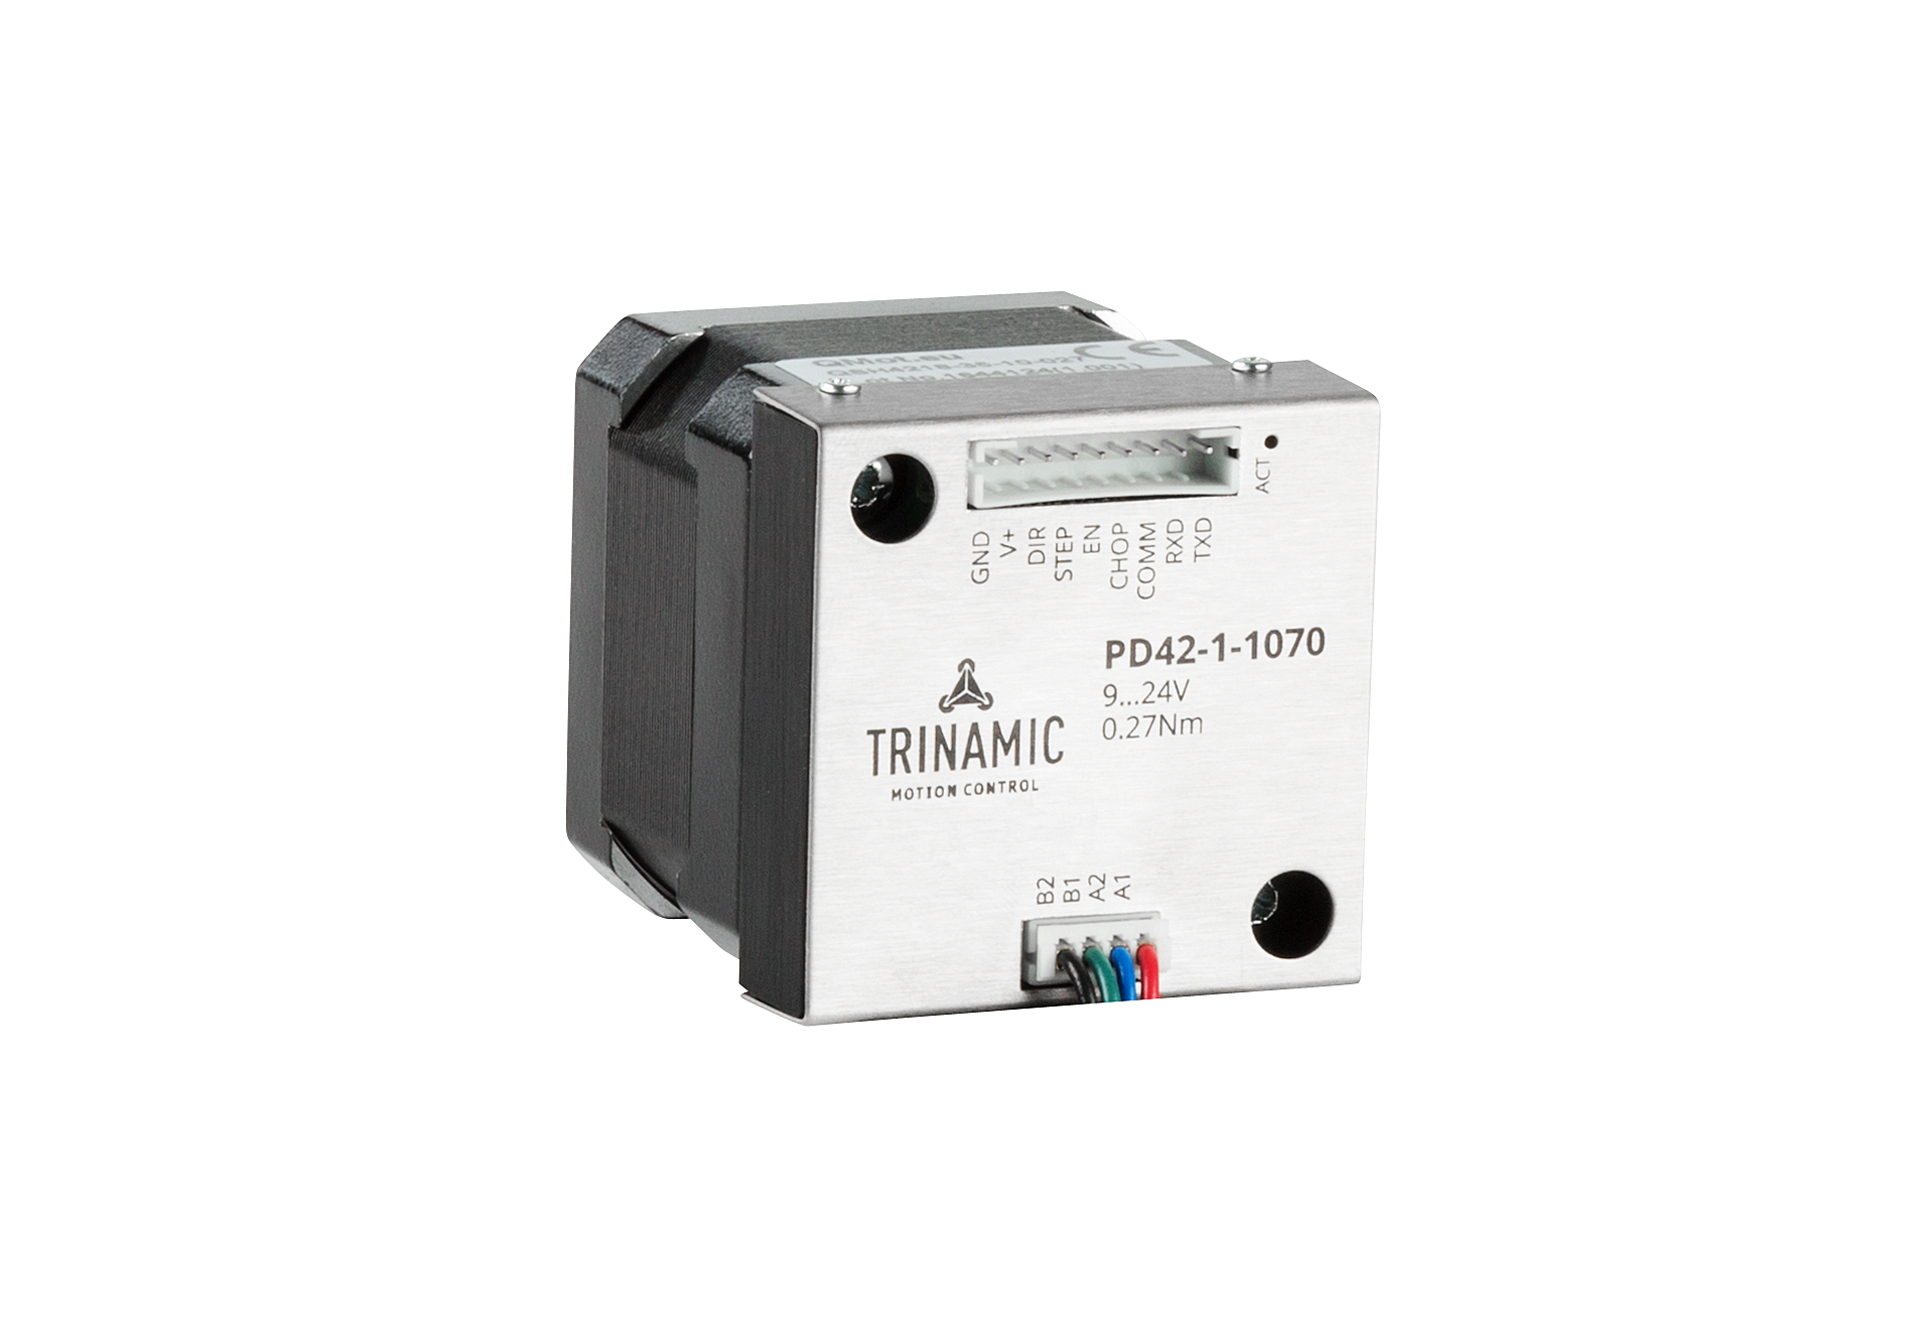 TRINAMIC Motion Control - PD42-1-1070 Pandrive